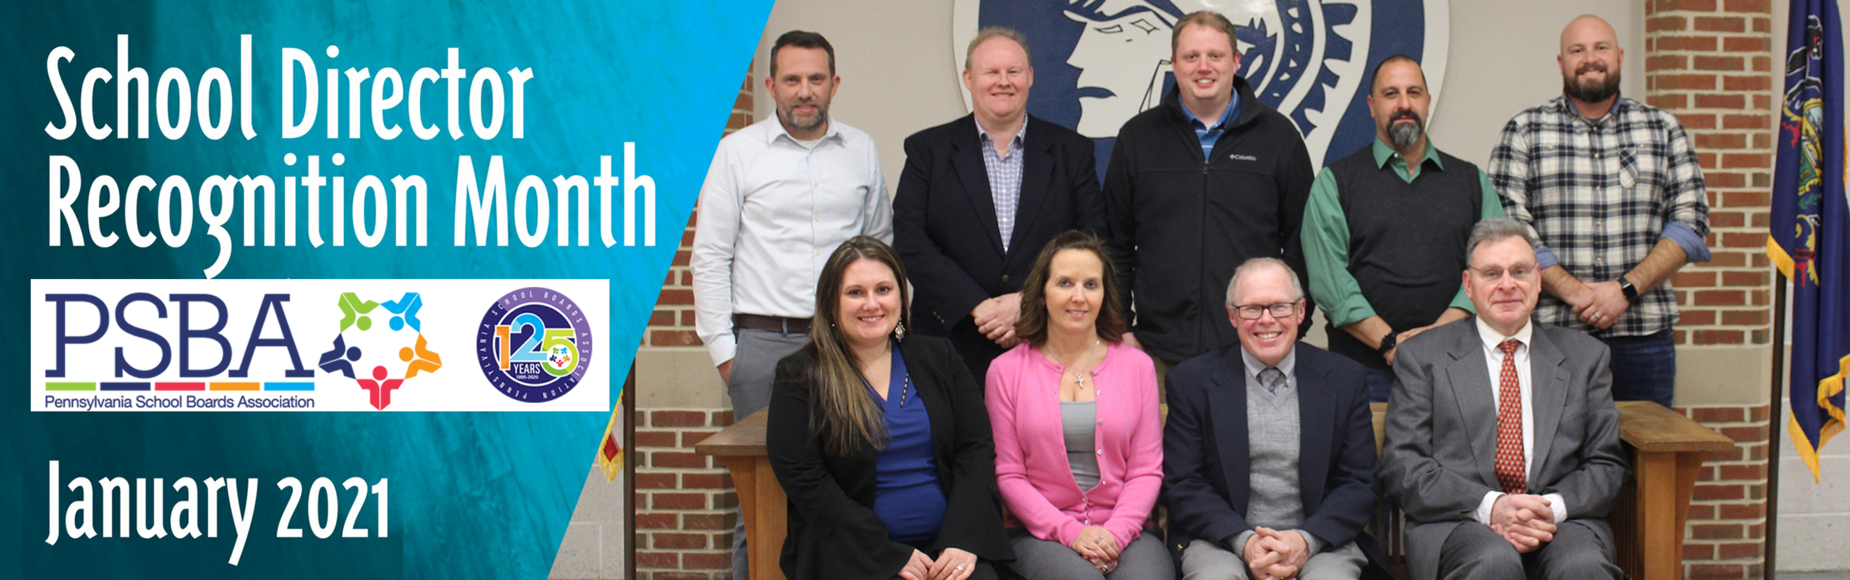 School Board Director Recognition Month January 2021 Banner